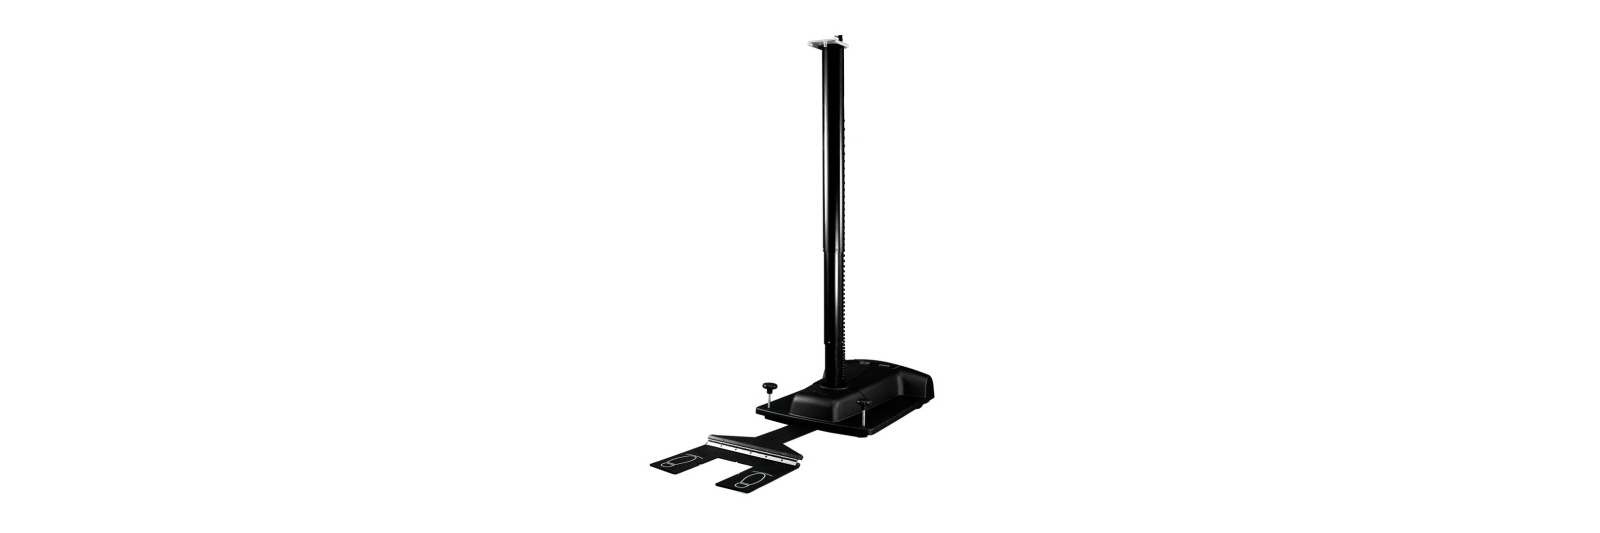 A Tobii Pro floor stand